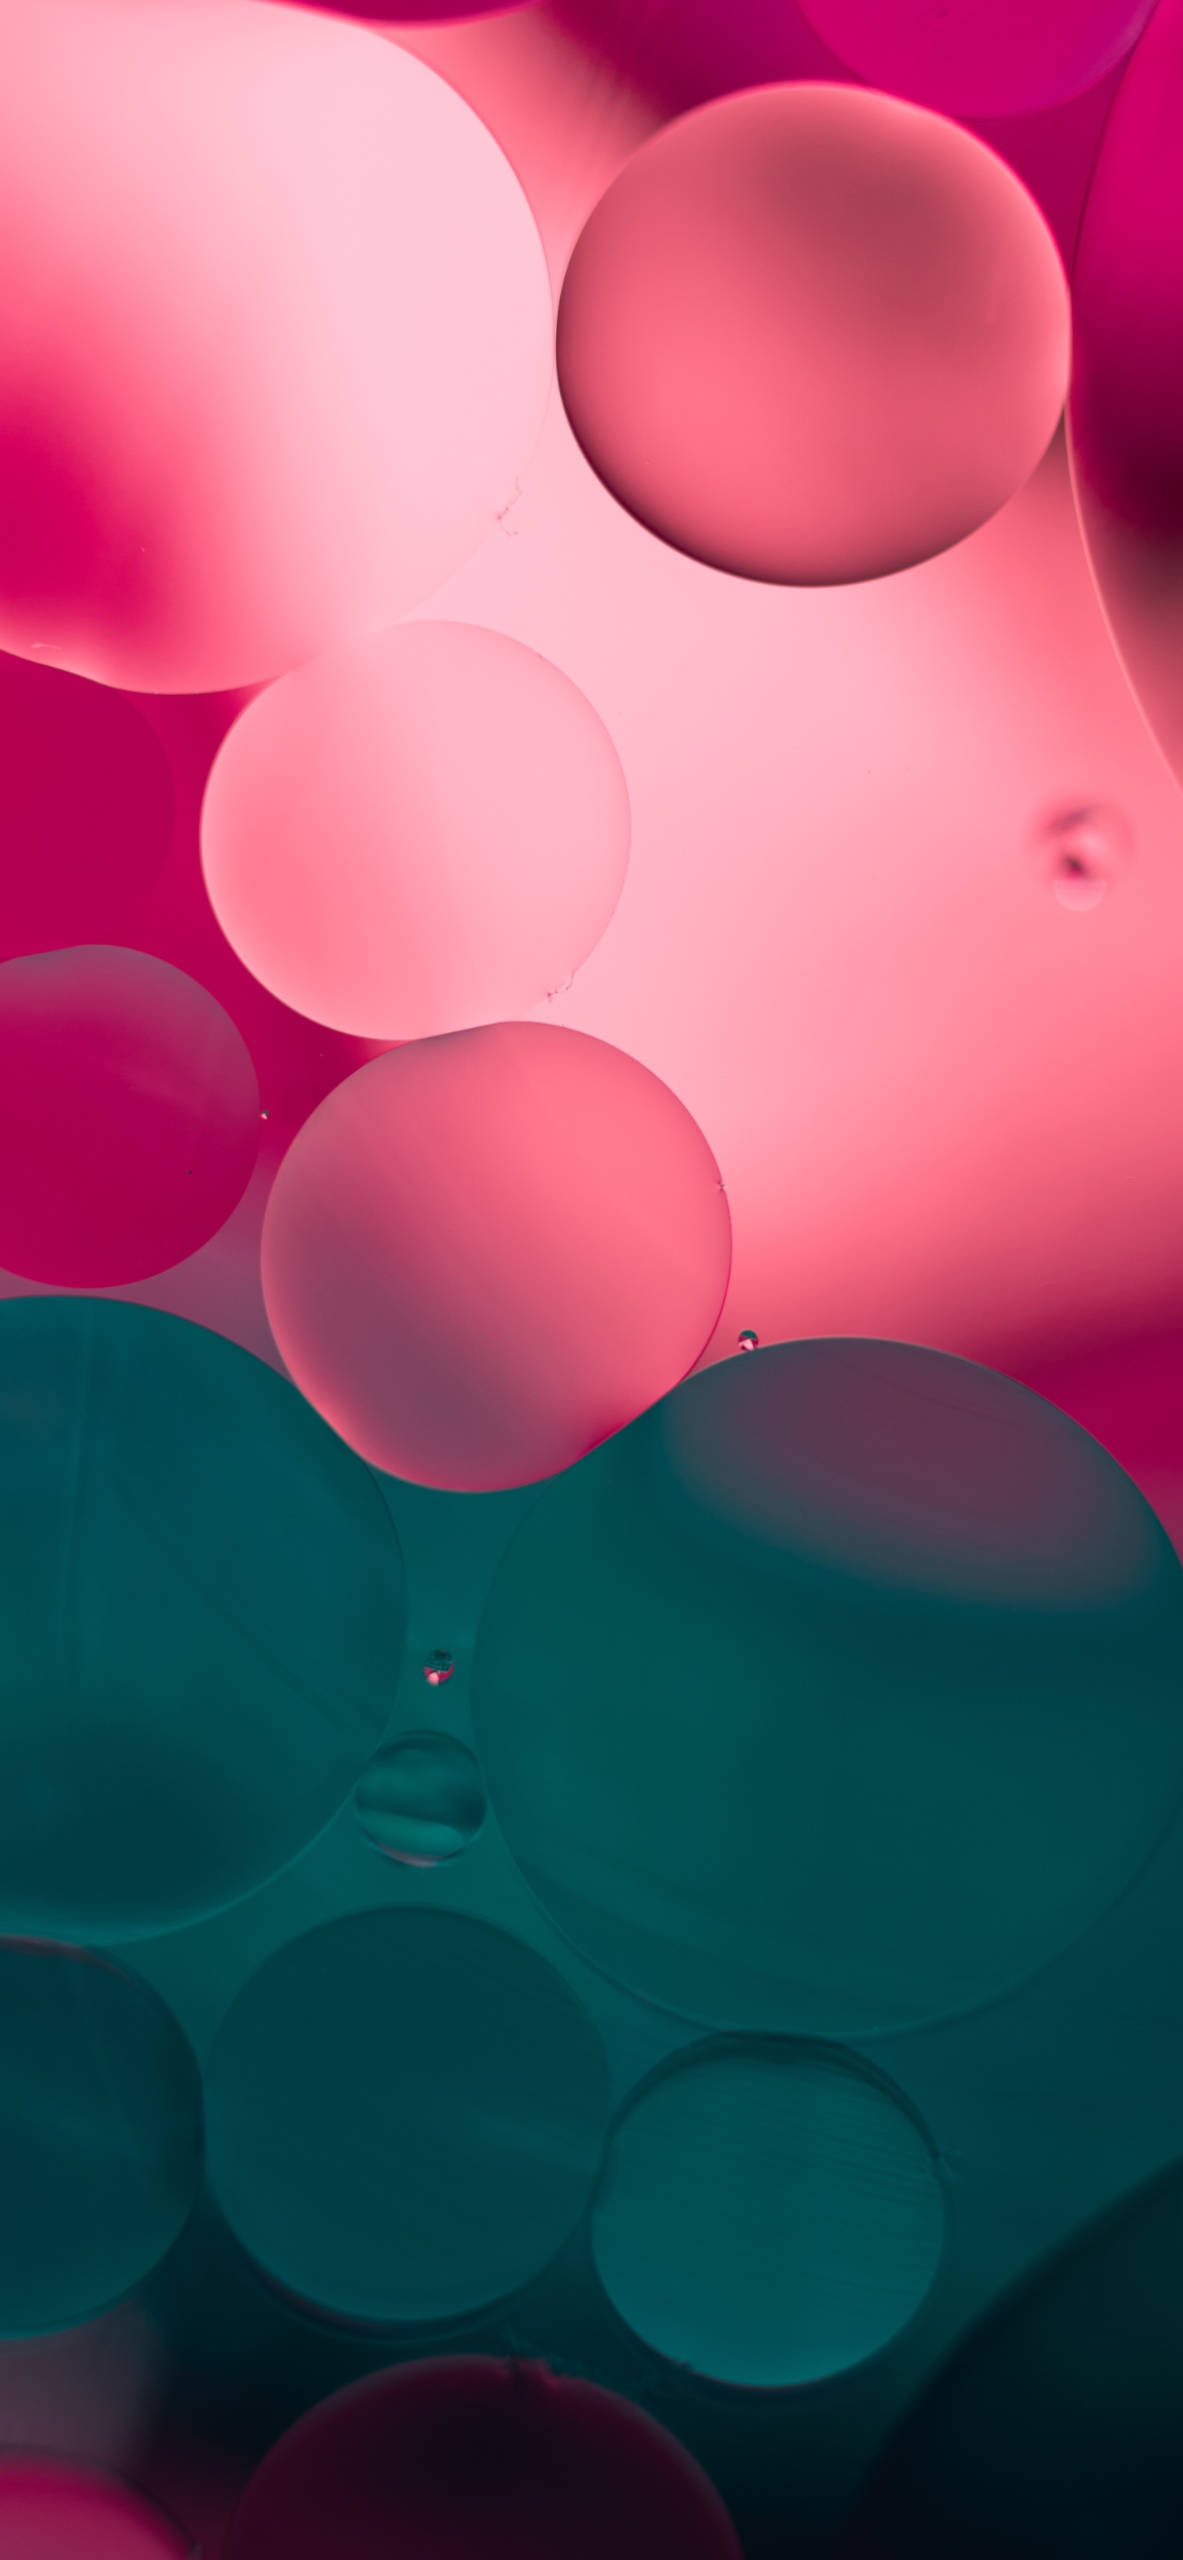 iPhone wallpapers abstract balls pink blue Abastract